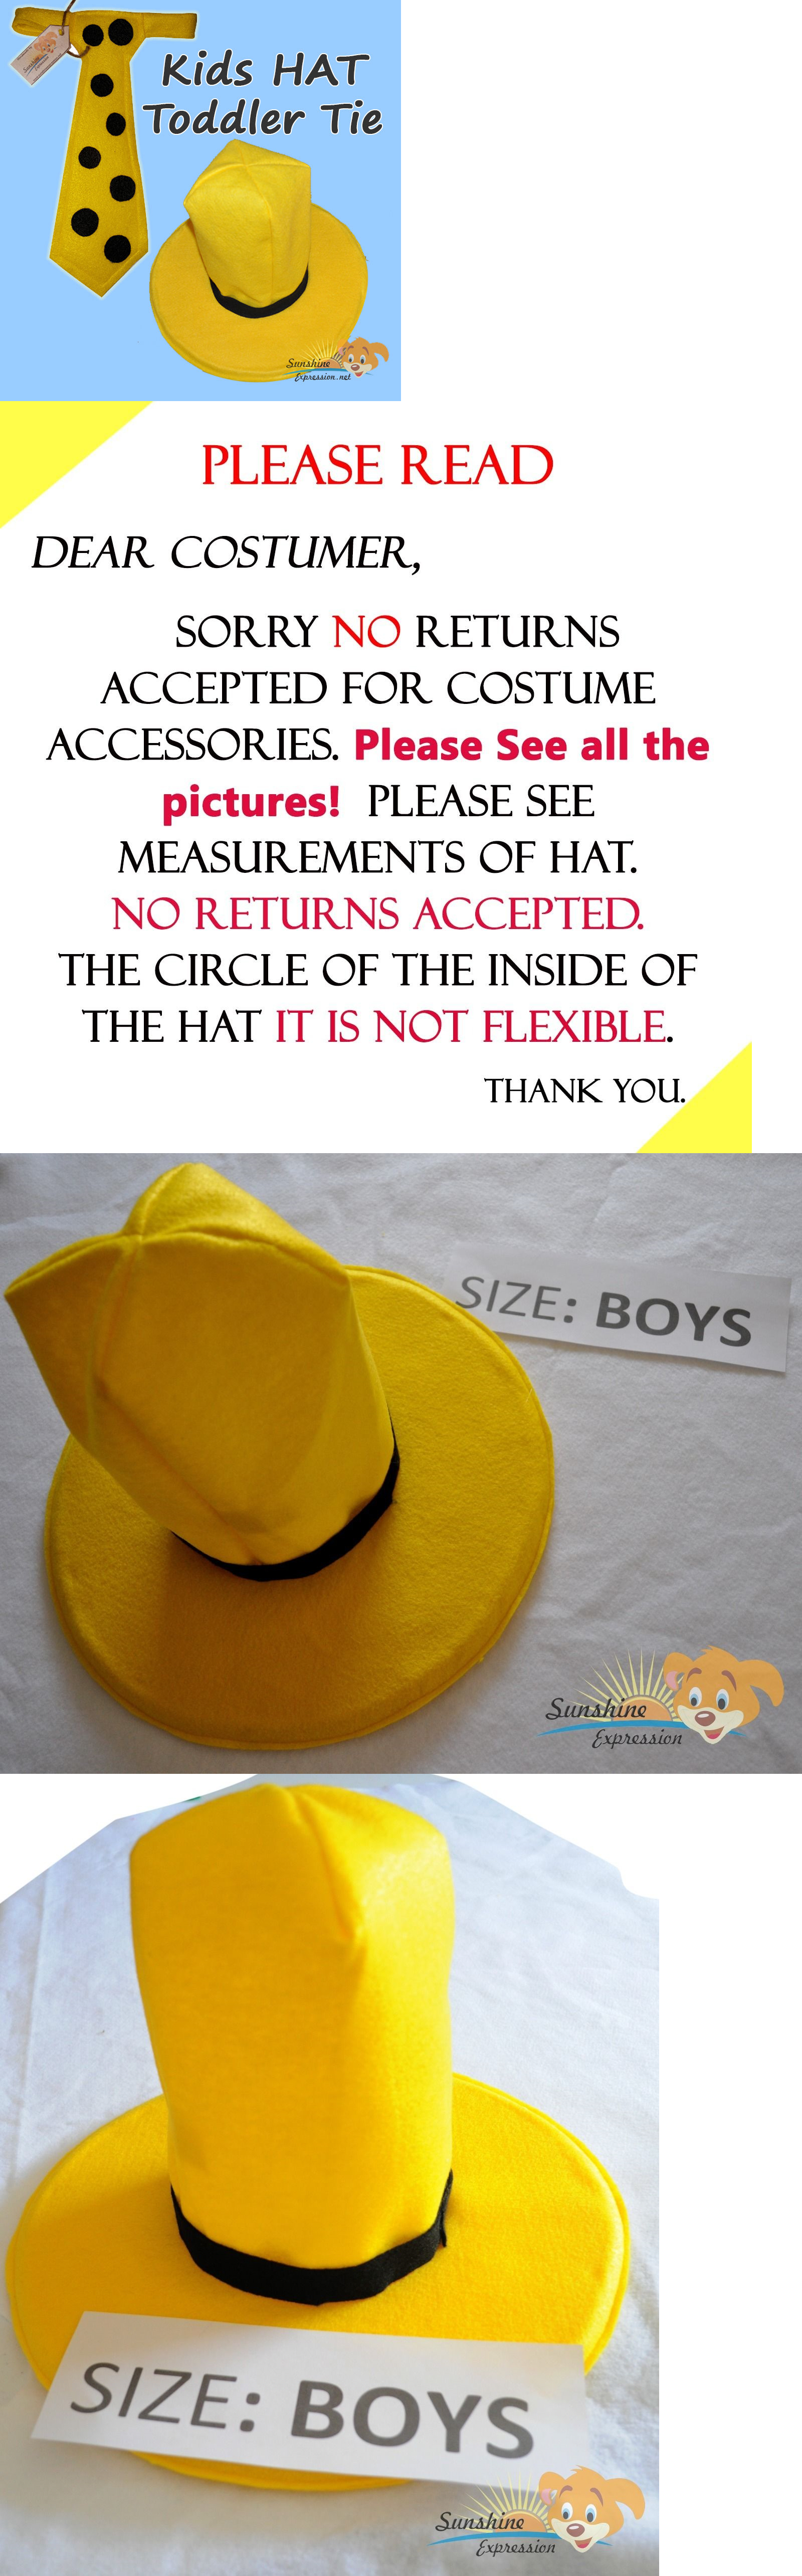 ac5b975b28d Hats 57884  Boys Hat And Toddler Tie Man In The Yellow Hat Curious George  Halloween Costume -  BUY IT NOW ONLY   35.99 on eBay!